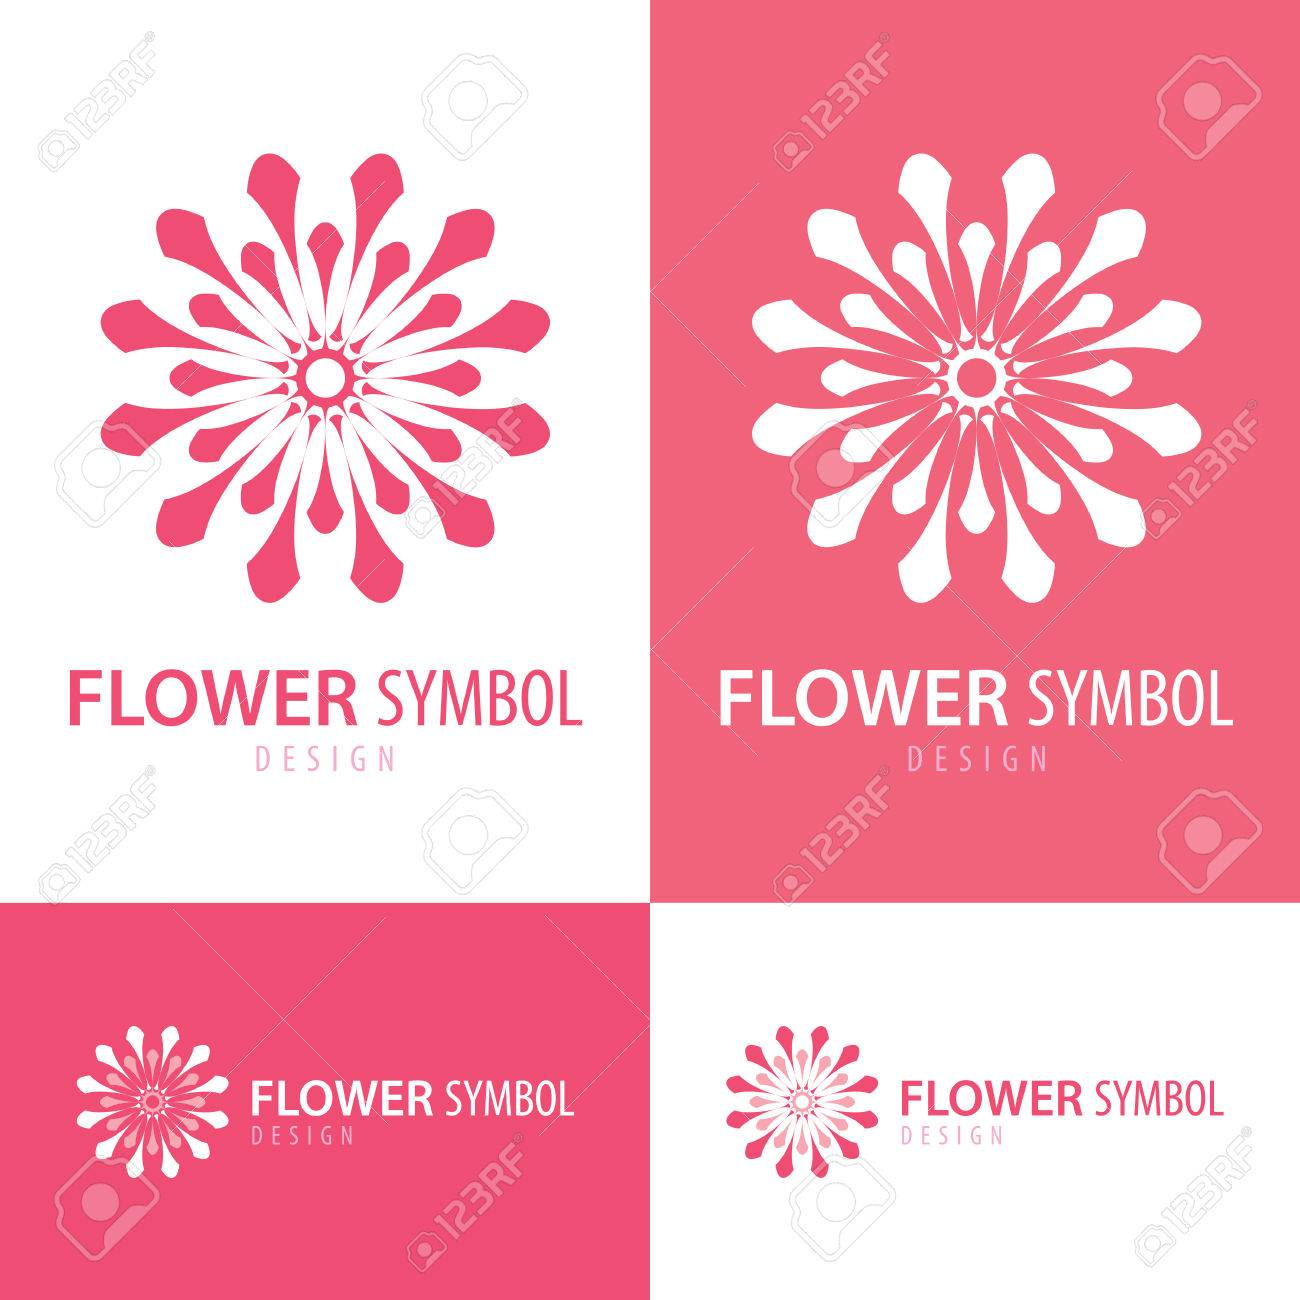 Pink And White Flower Symbol Icon Design With Business Card